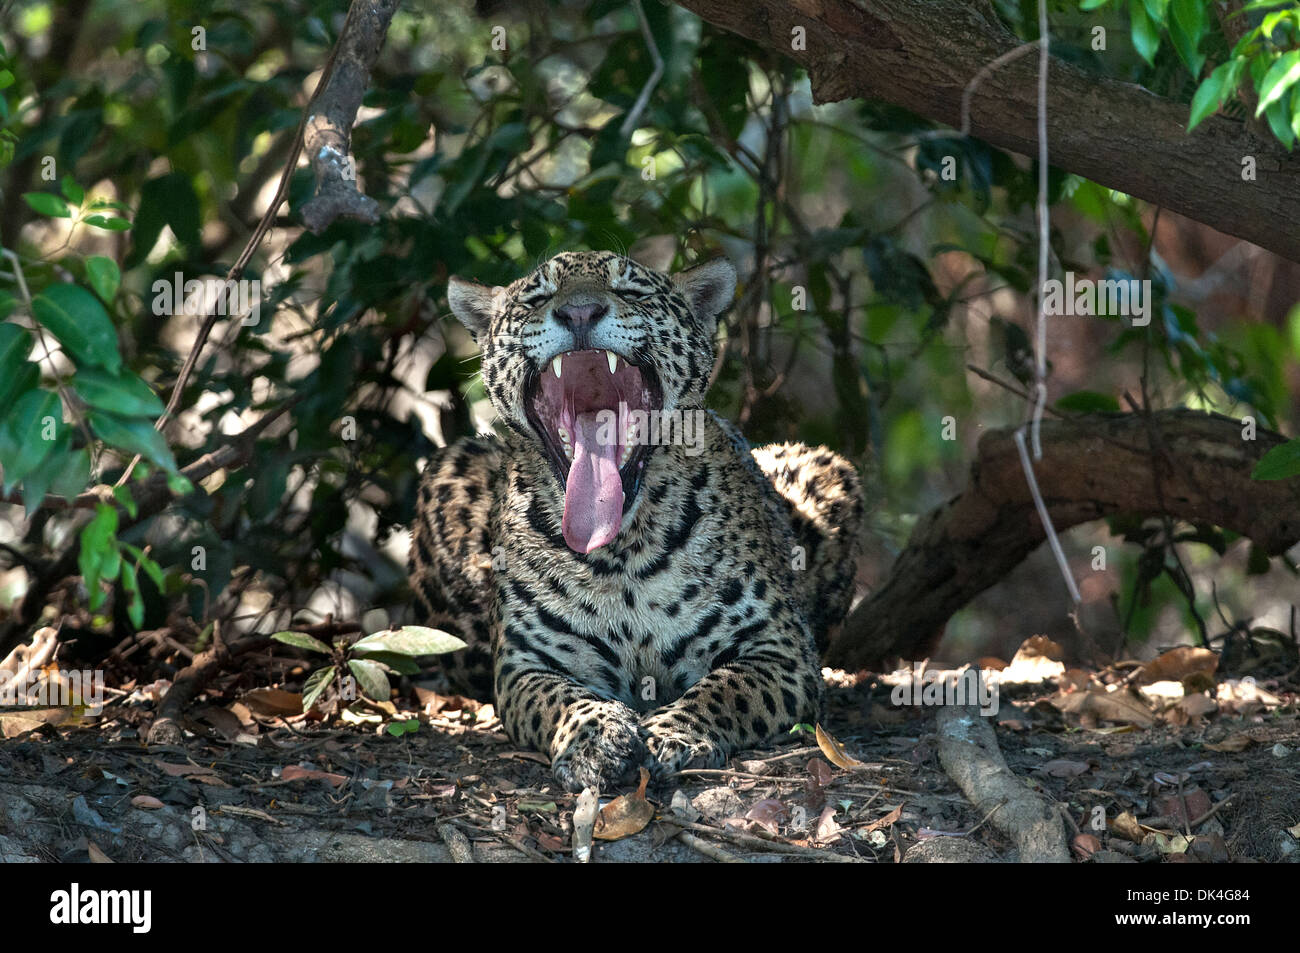 Jaguar, yawning, in Pantanal region of Brazil - Stock Image